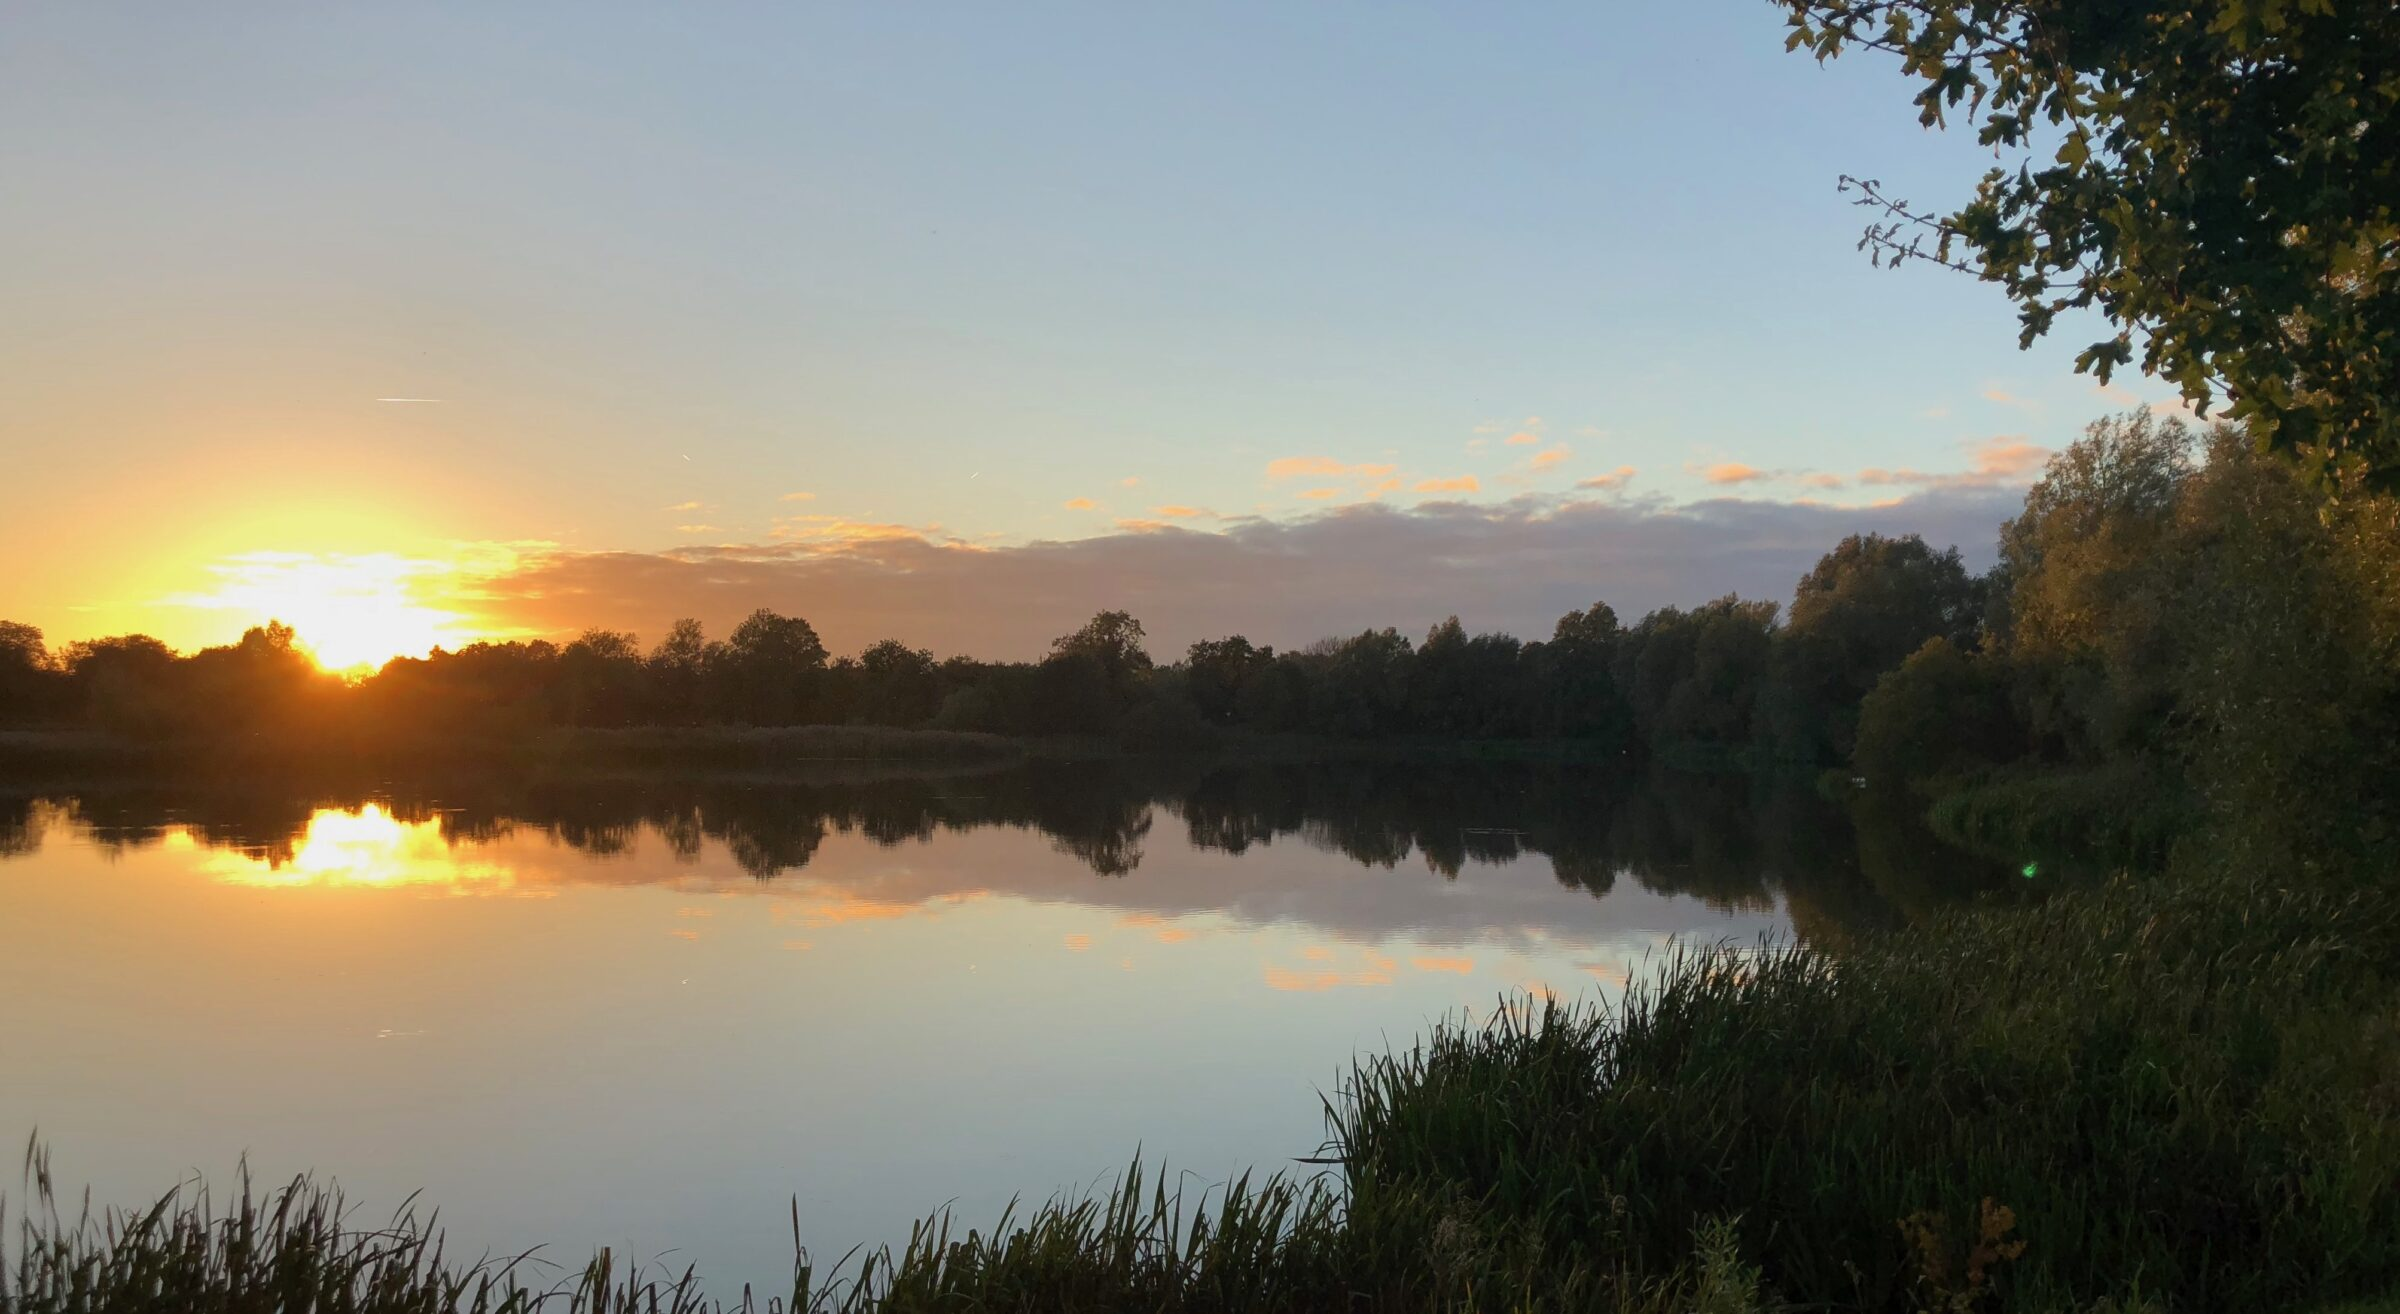 Sunrise over a lake in The Cotswolds